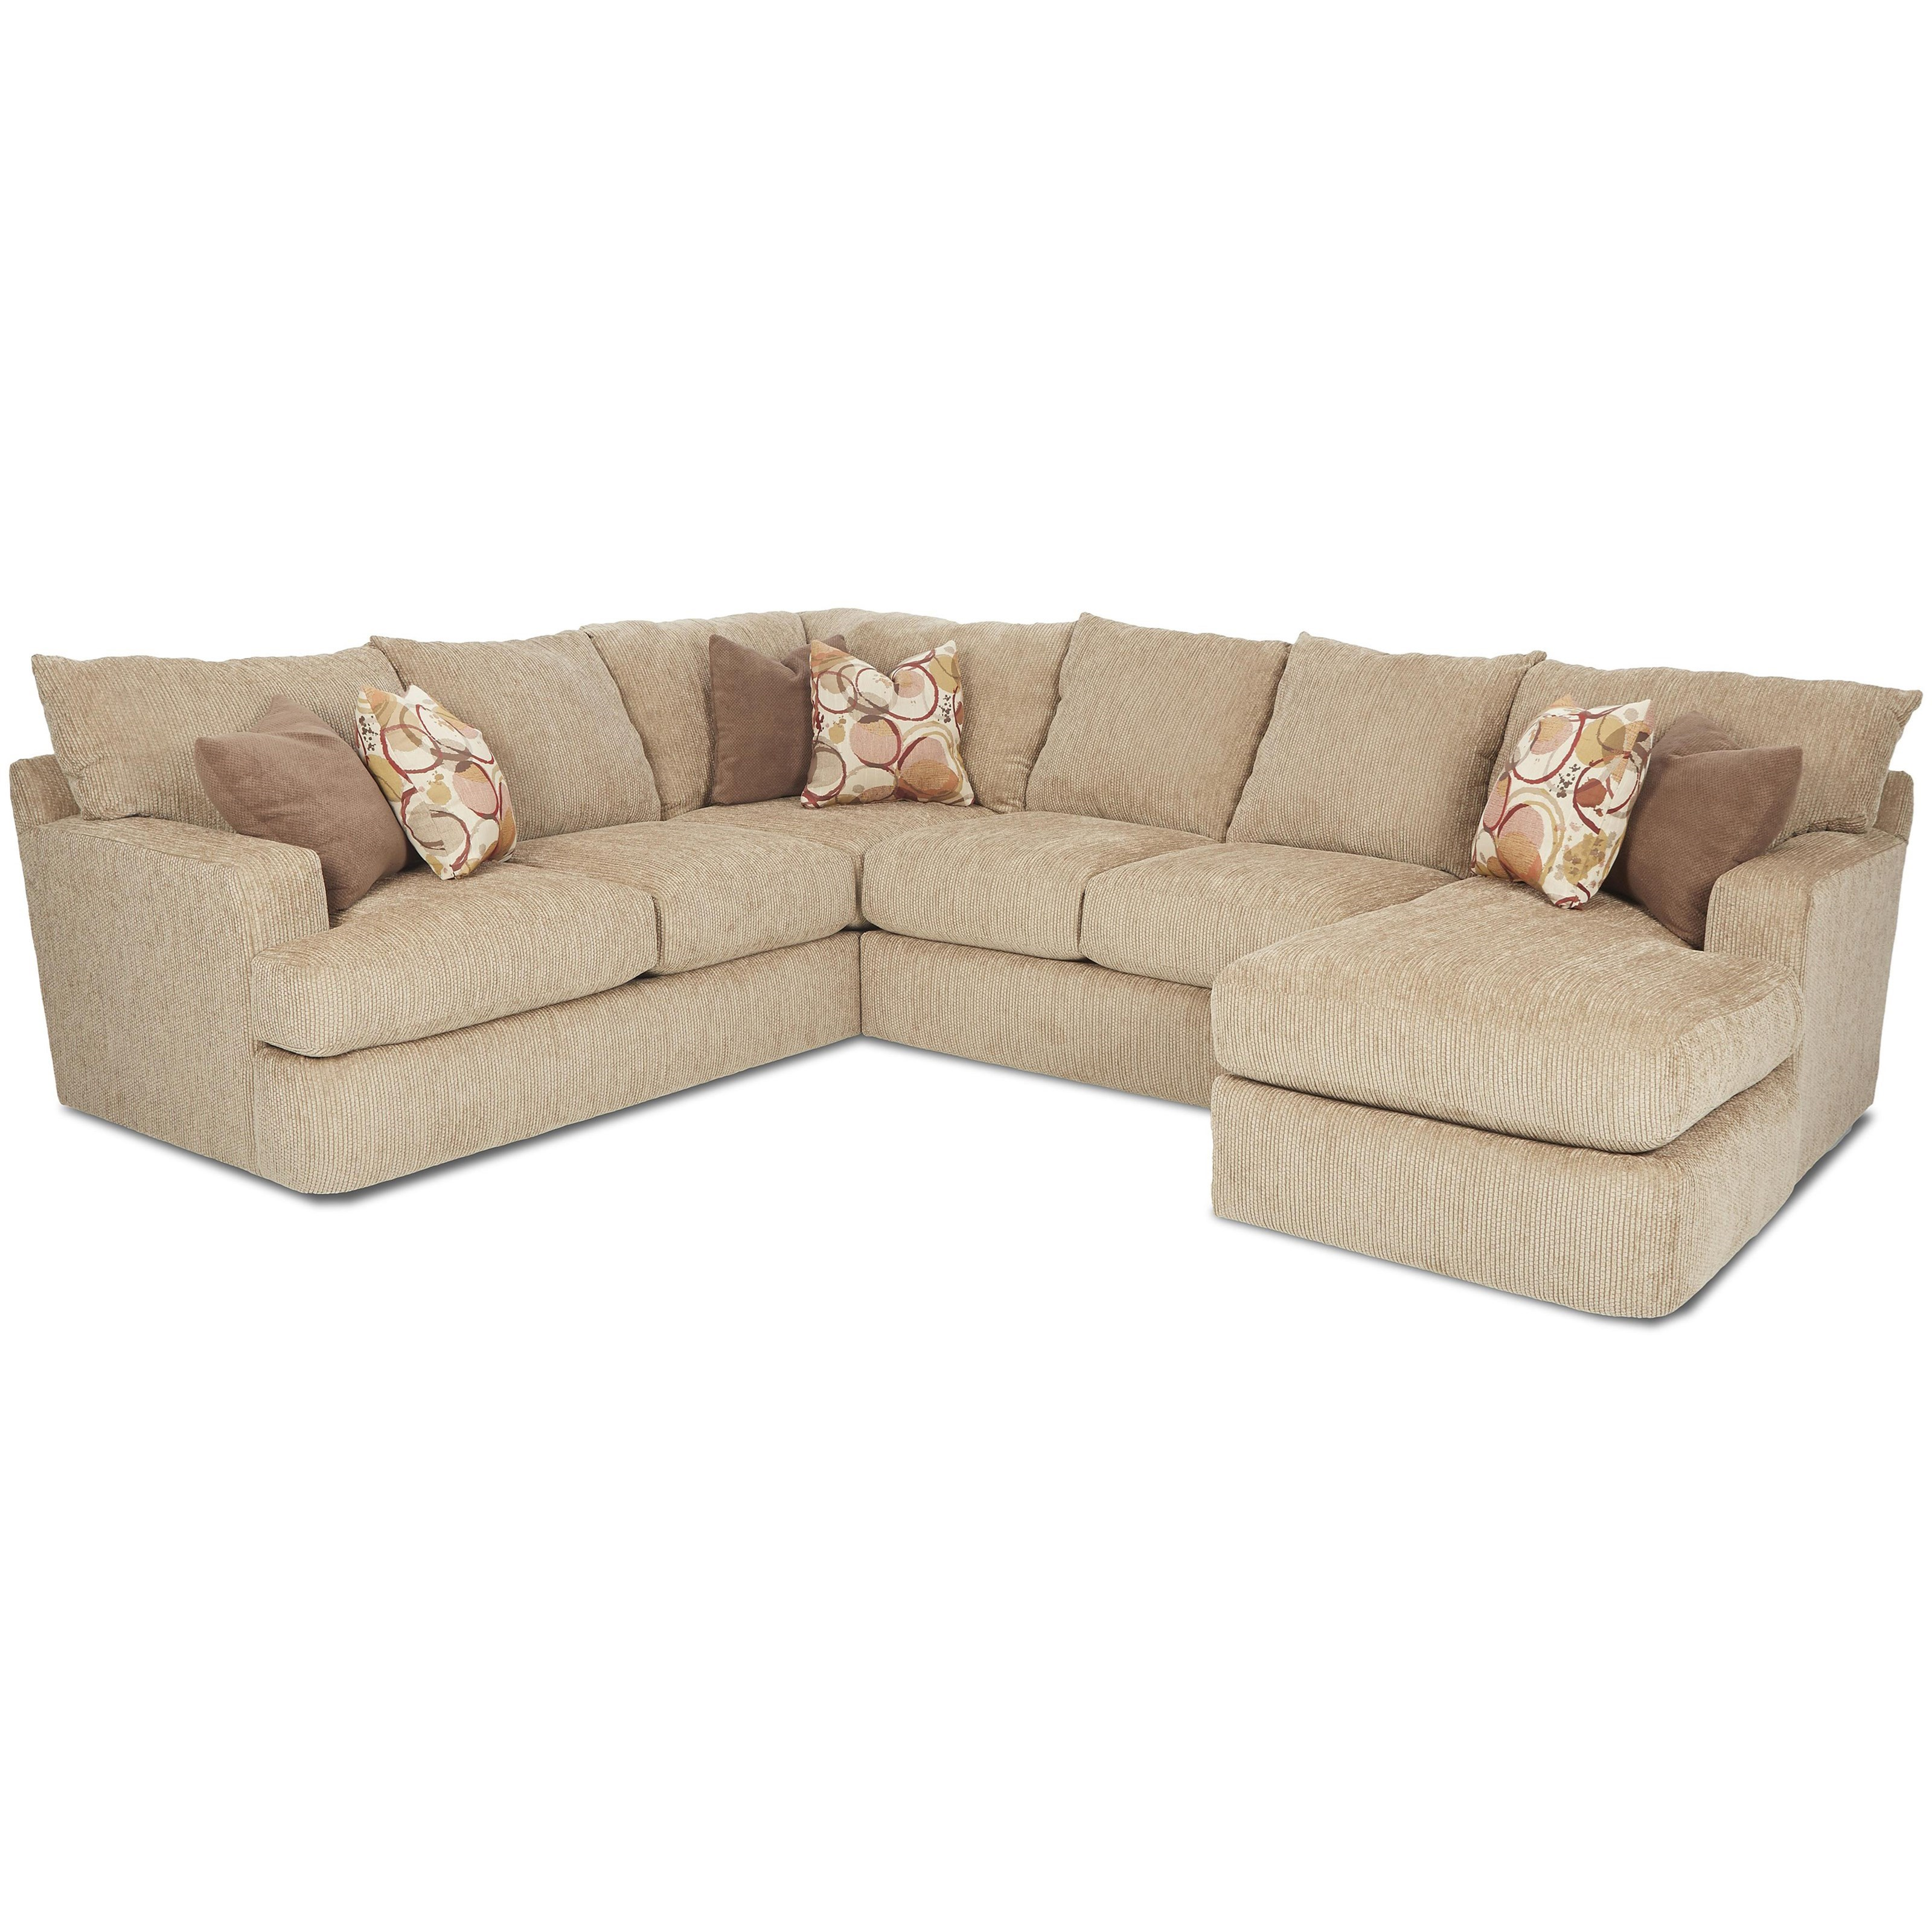 Klaussner Oliver Sectional Sofa - Item Number: K41400LCRNS+K41400ALS+K41400RCHASE